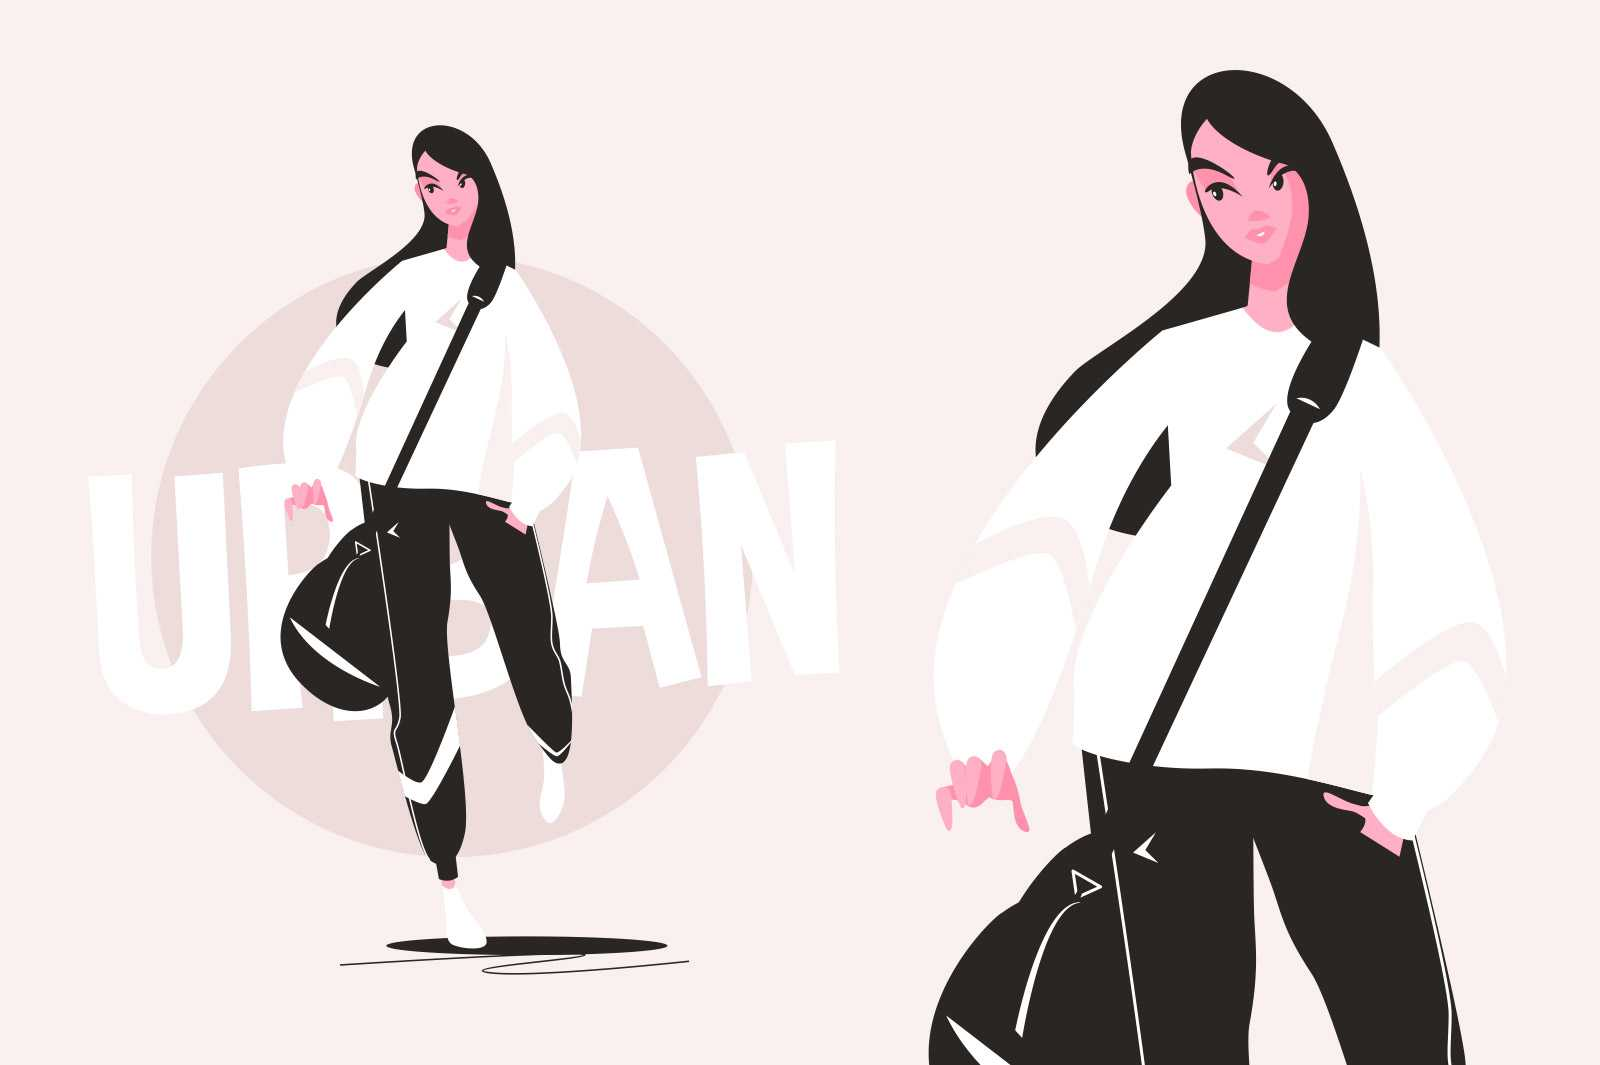 Stylish young urban girl vector illustration. Woman in sport costume with black bag flat style. Fashionable character. Fashion and street style concept. Isolated on pink background